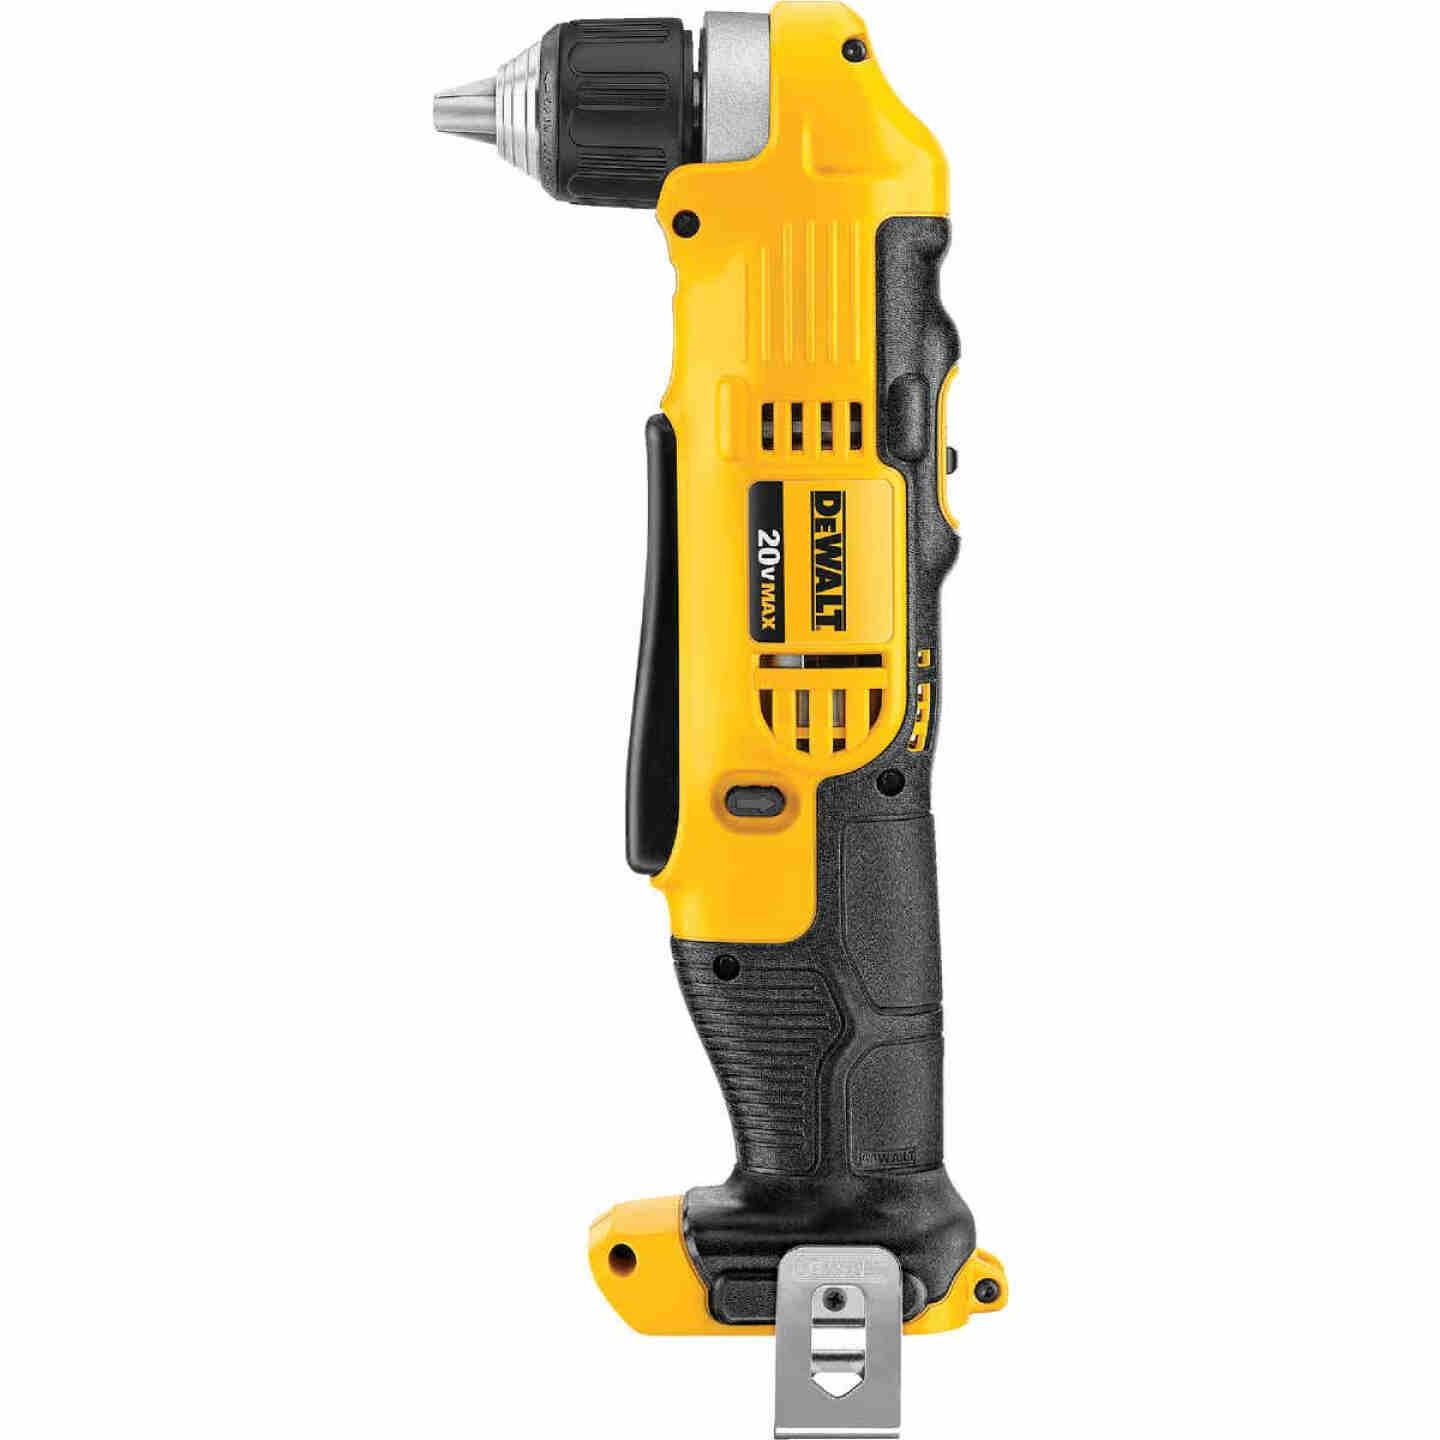 DeWalt 20 Volt MAX Lithium-Ion 3/8 In. Cordless Angle Drill (Bare Tool) Image 2